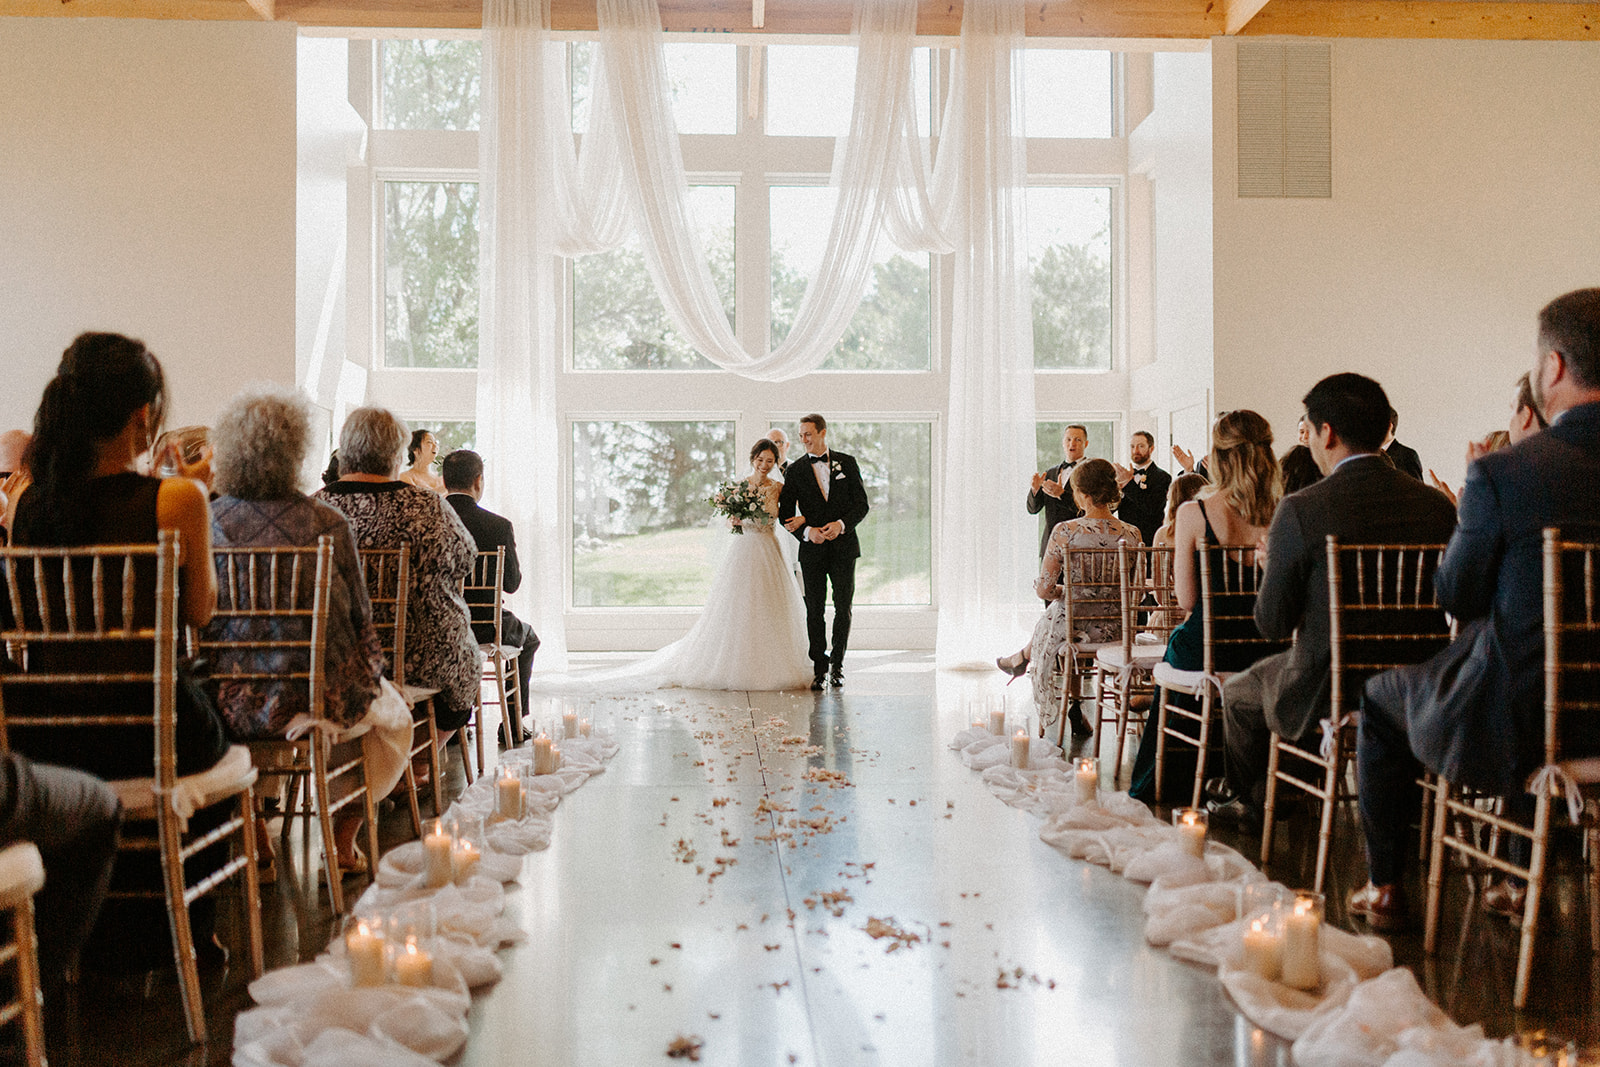 pear_tree_estate_wedding_photographer_champaign_chicago_illinois_midwest_wright_photographs_0226.jpg